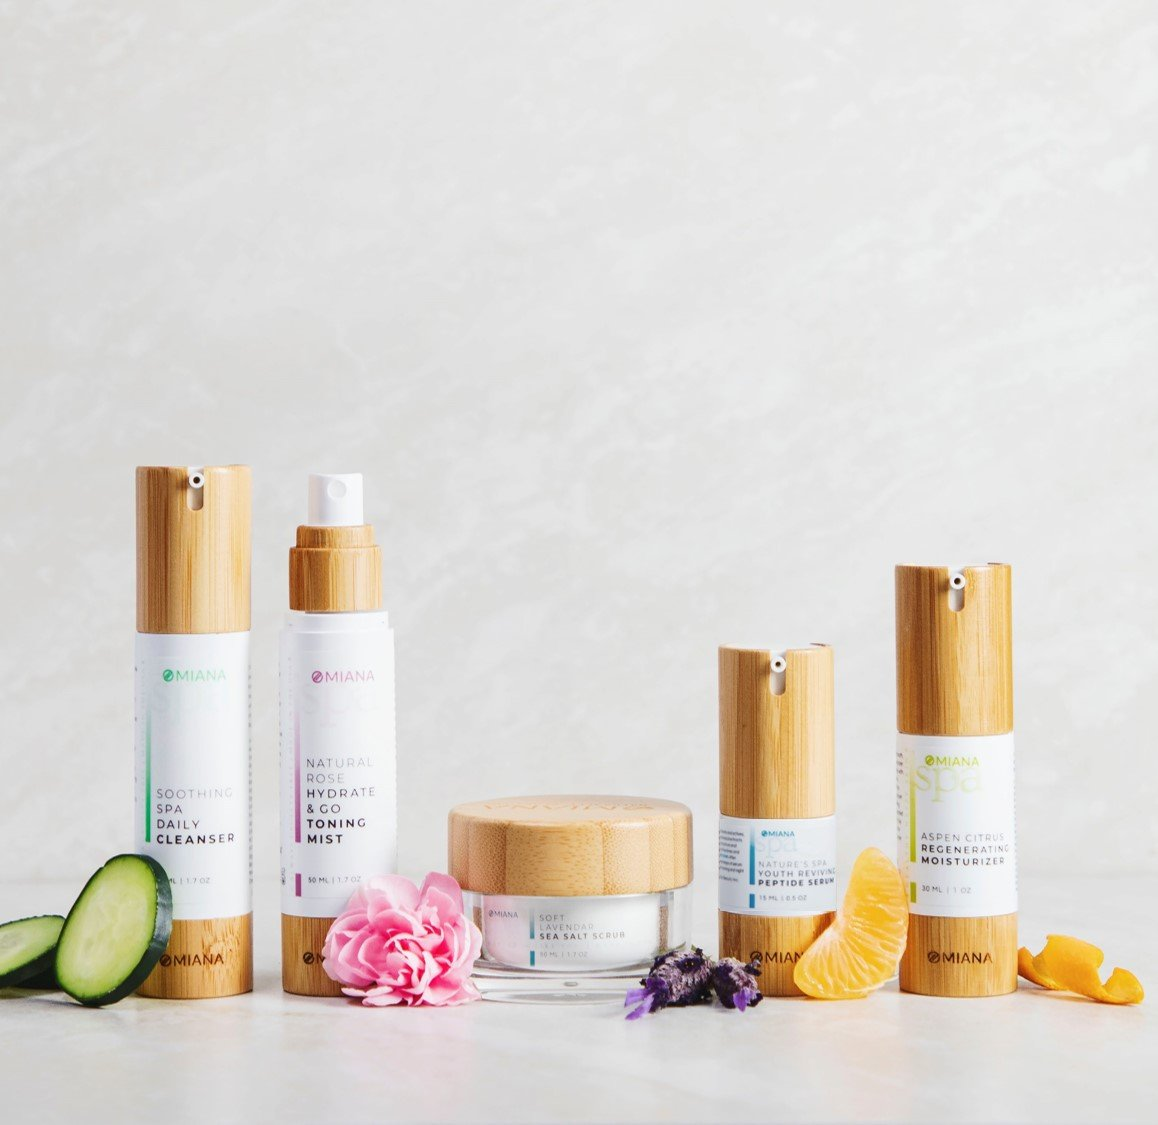 Omiana Natural Spa Skincare for Sensitive Skin Pure Glow Skincare Routine Complete Bundle